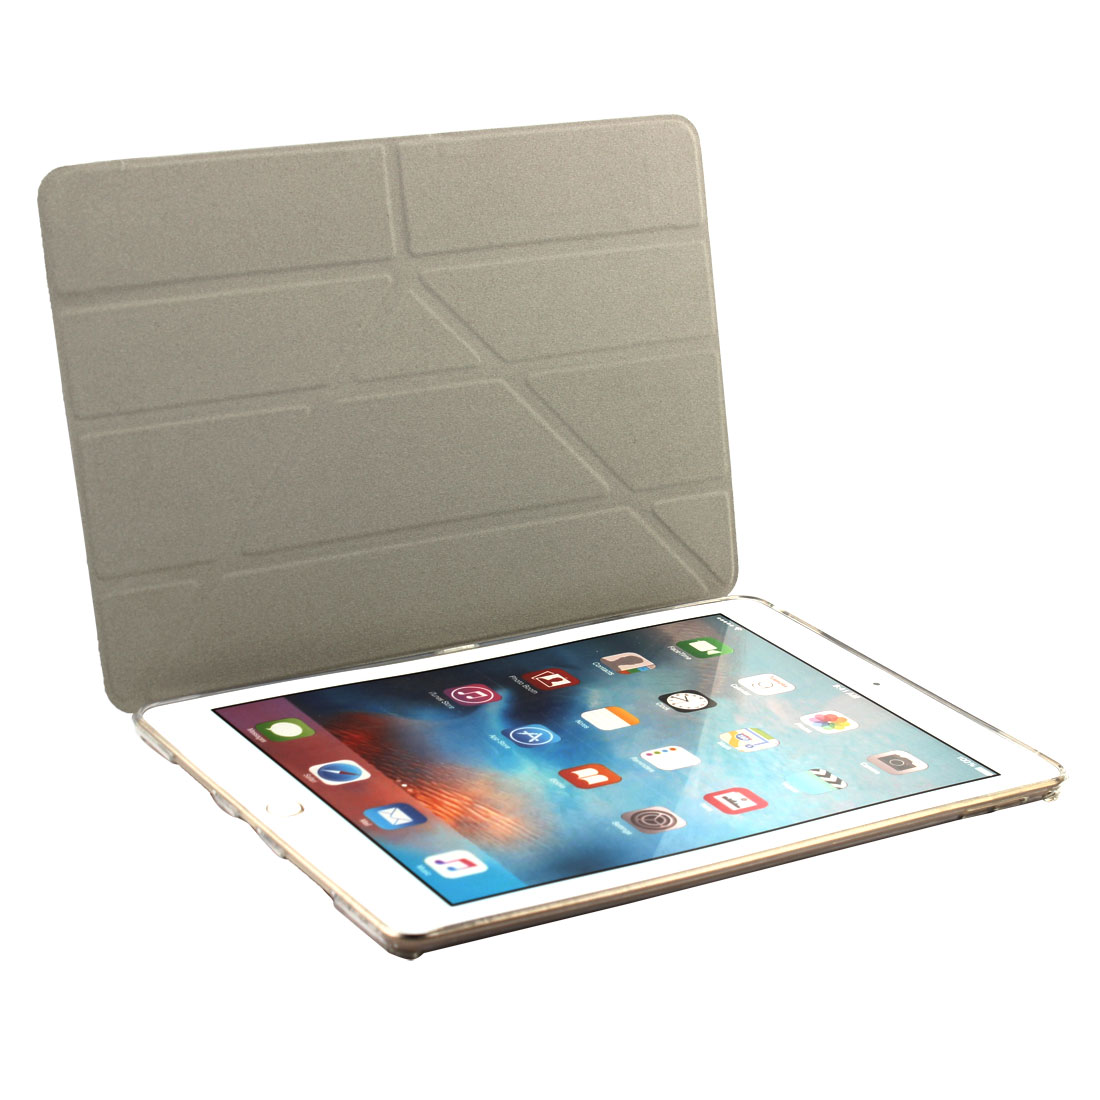 Gray PU Leather Foldable Protect Shell Cover Case for iPad Pro 9.7 Inch